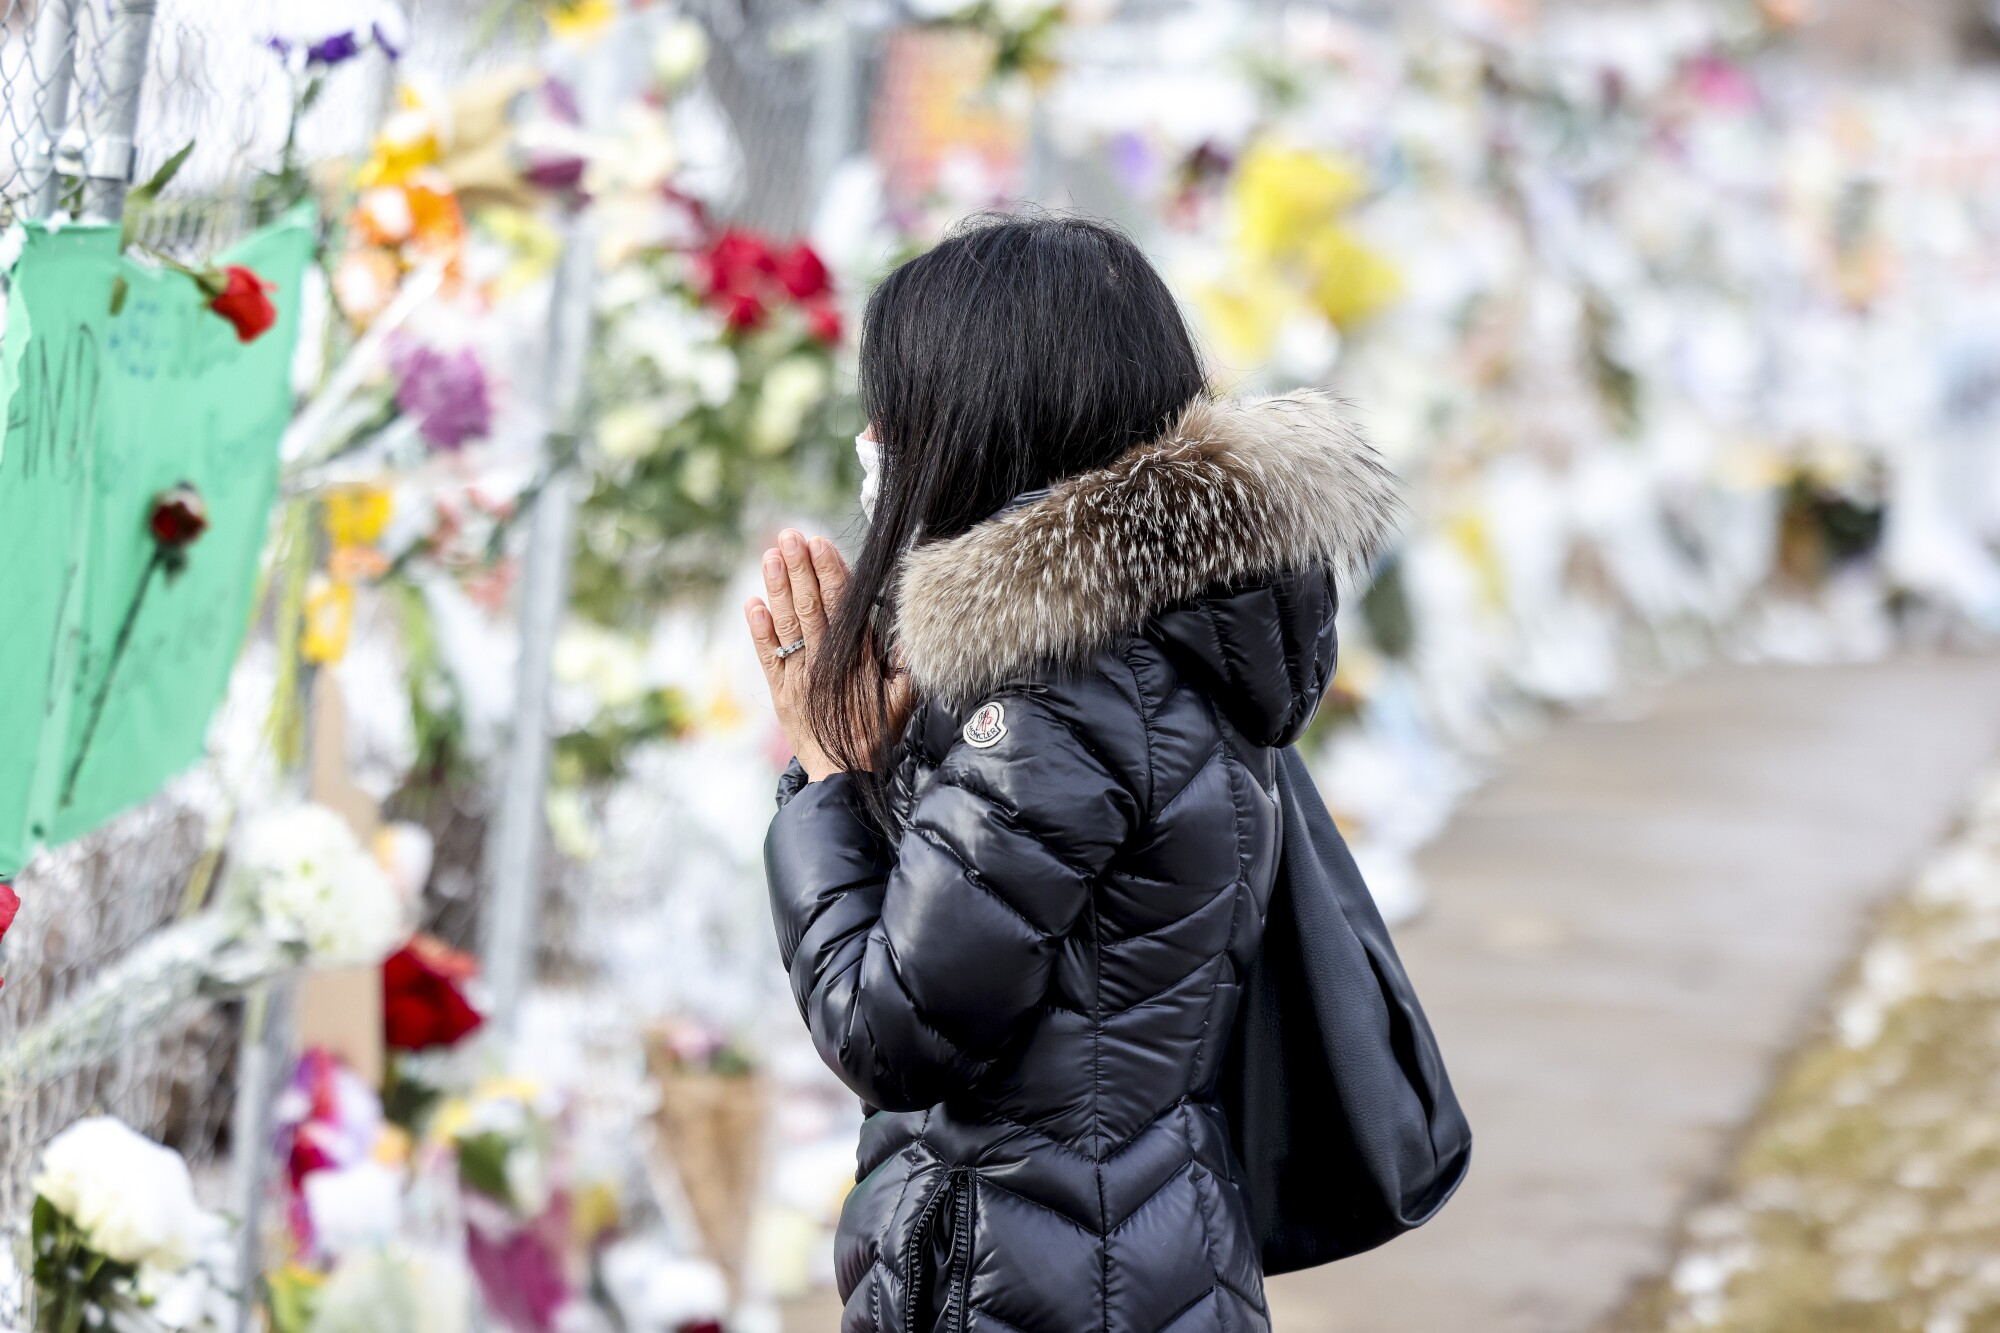 A woman stands with her hands clasped in front of a display of flowers on a sidewalk